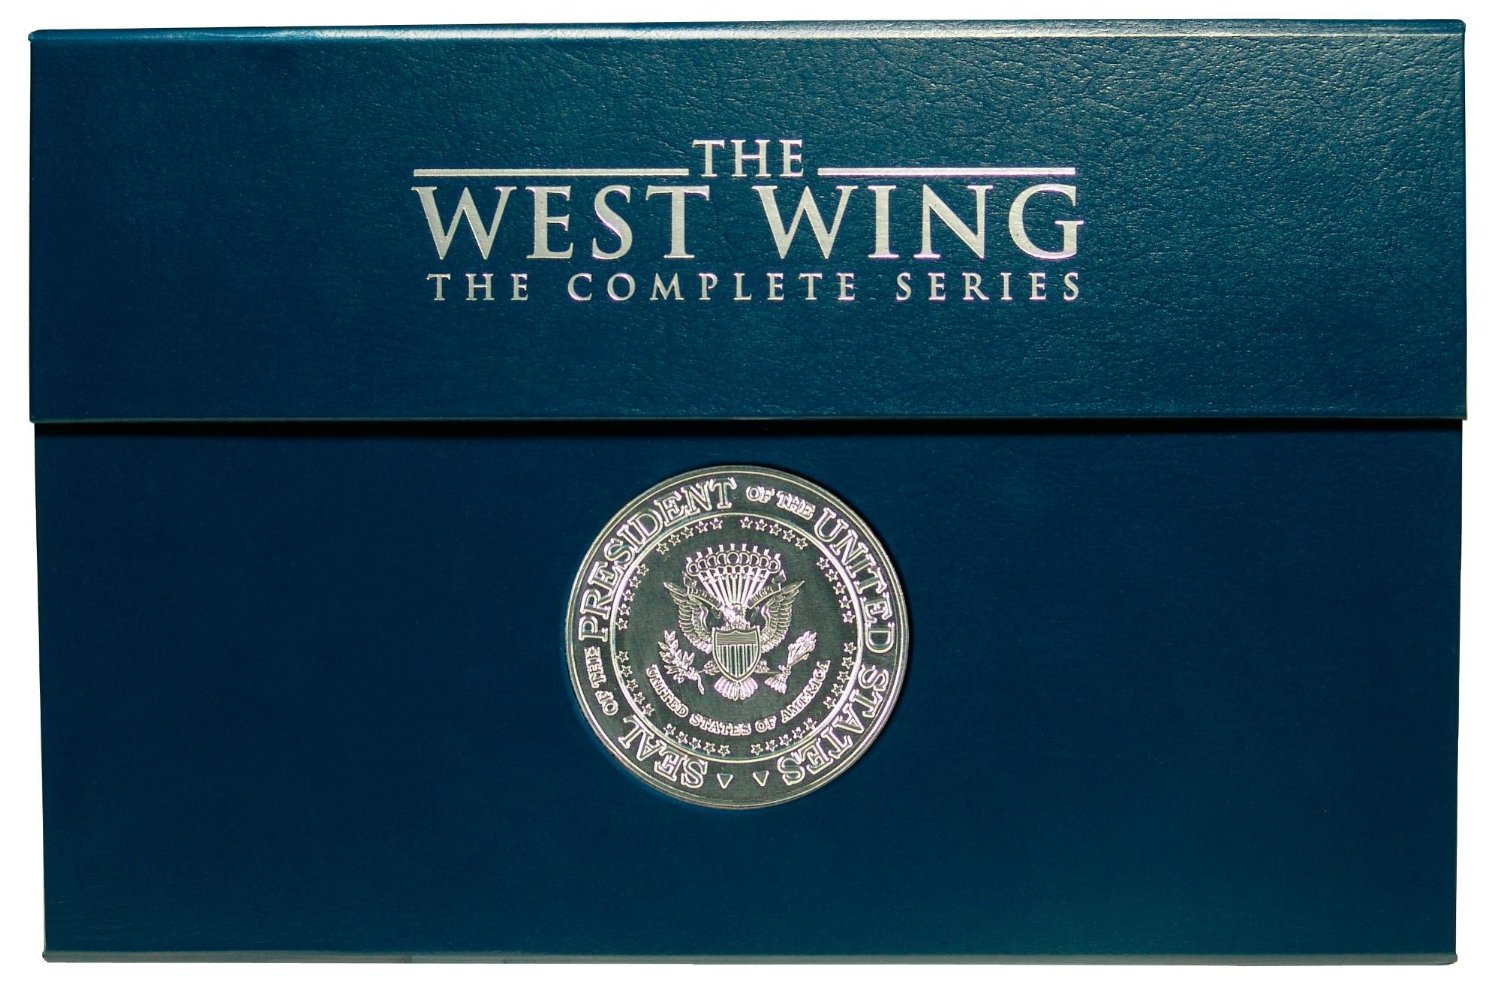 coupon stl the west wing the complete series collection 80 shipped. Black Bedroom Furniture Sets. Home Design Ideas